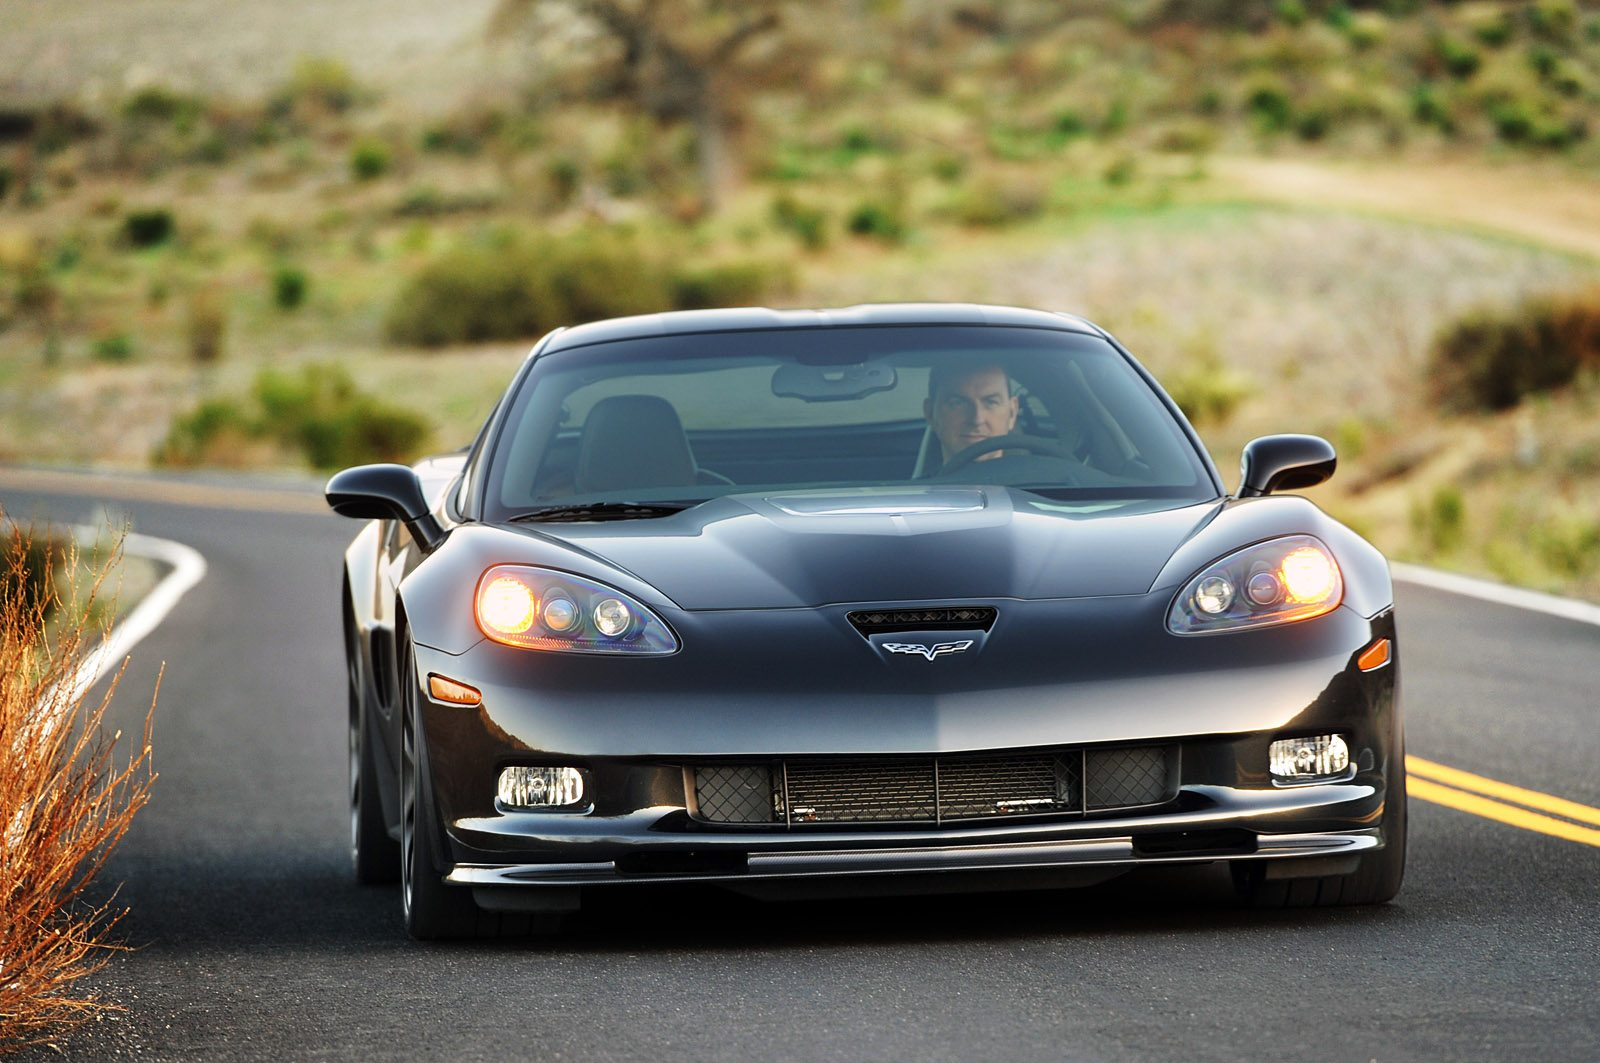 2012 chevrolet corvette zr1 image gallery pictures. Black Bedroom Furniture Sets. Home Design Ideas